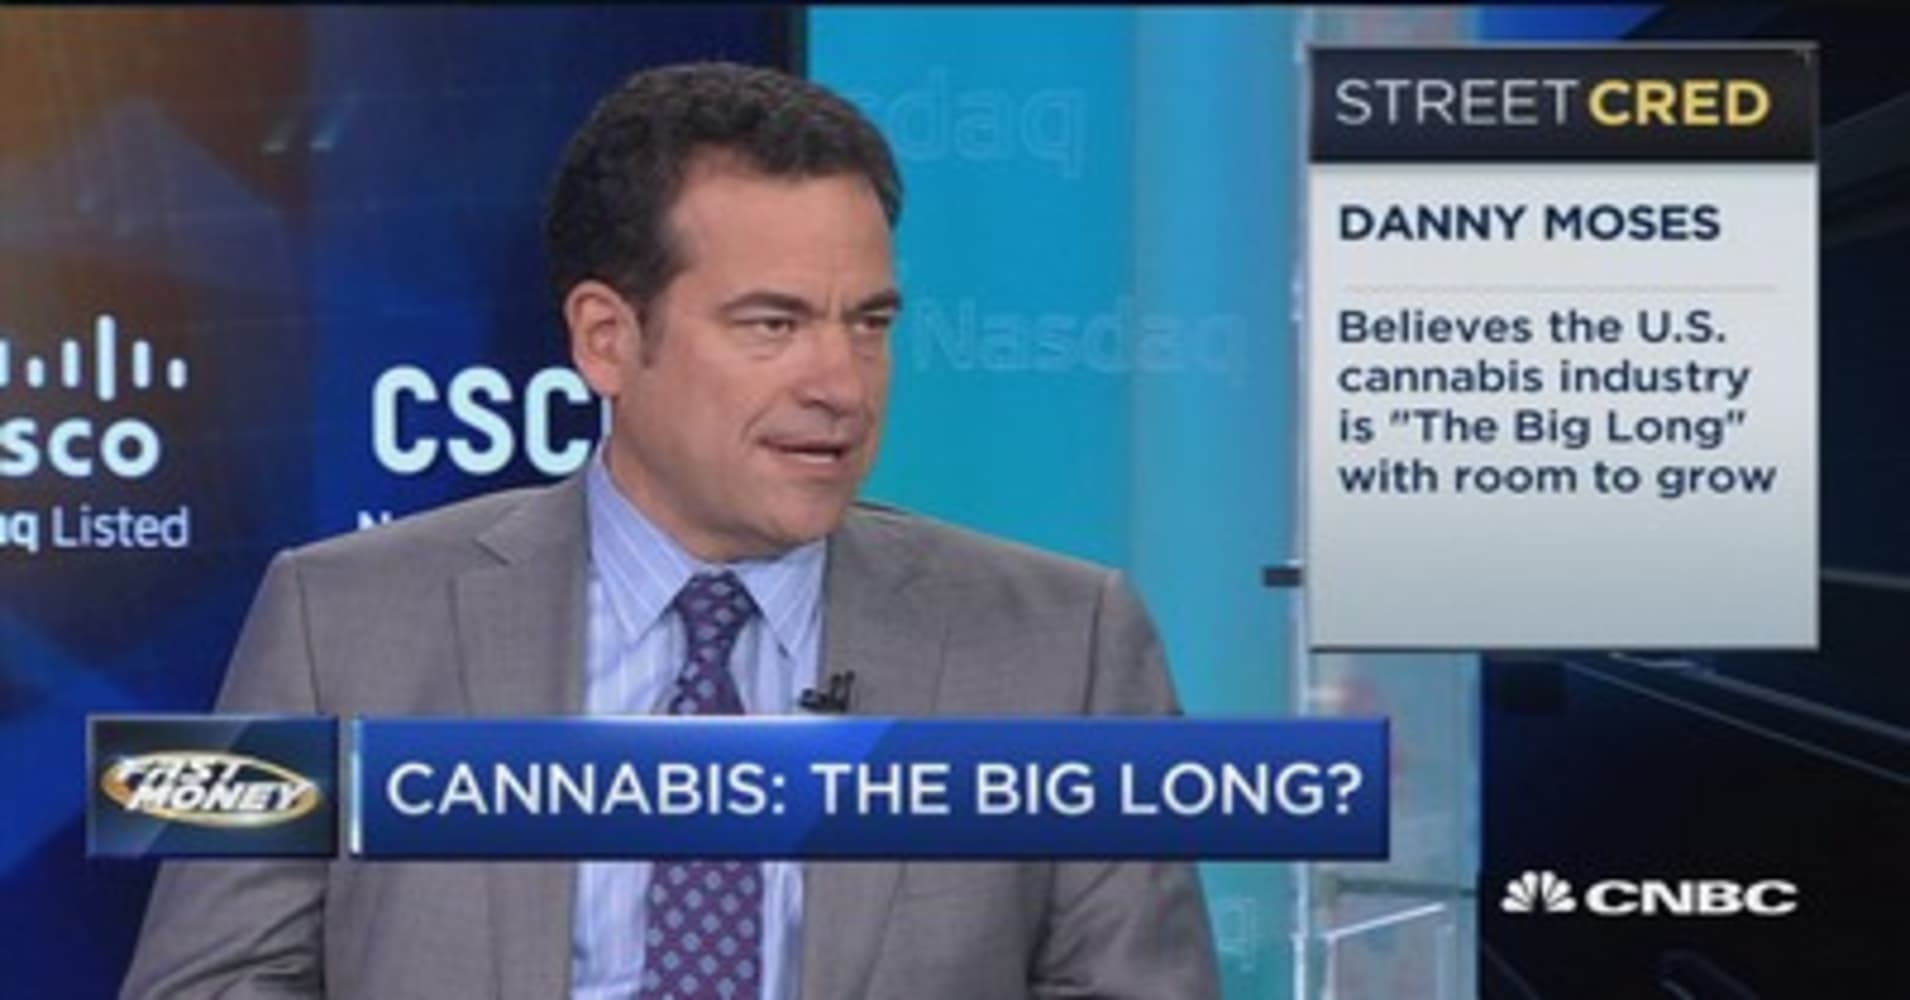 The cannabis industry has a number of 'tremendous' tailwinds: 'The Big Short's Danny Moses